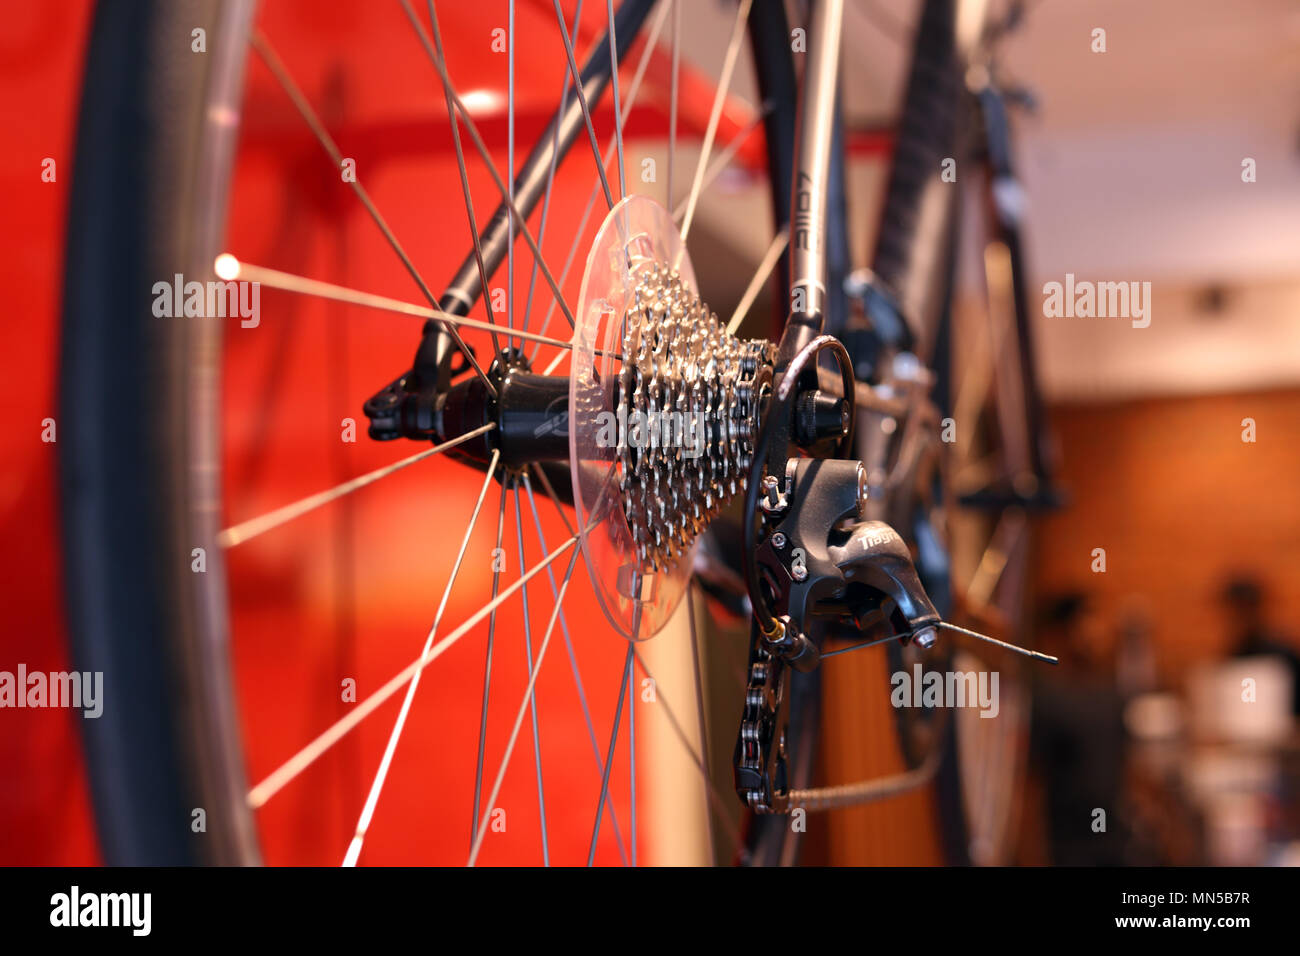 Gros plans d'engins bycicle Photo Stock